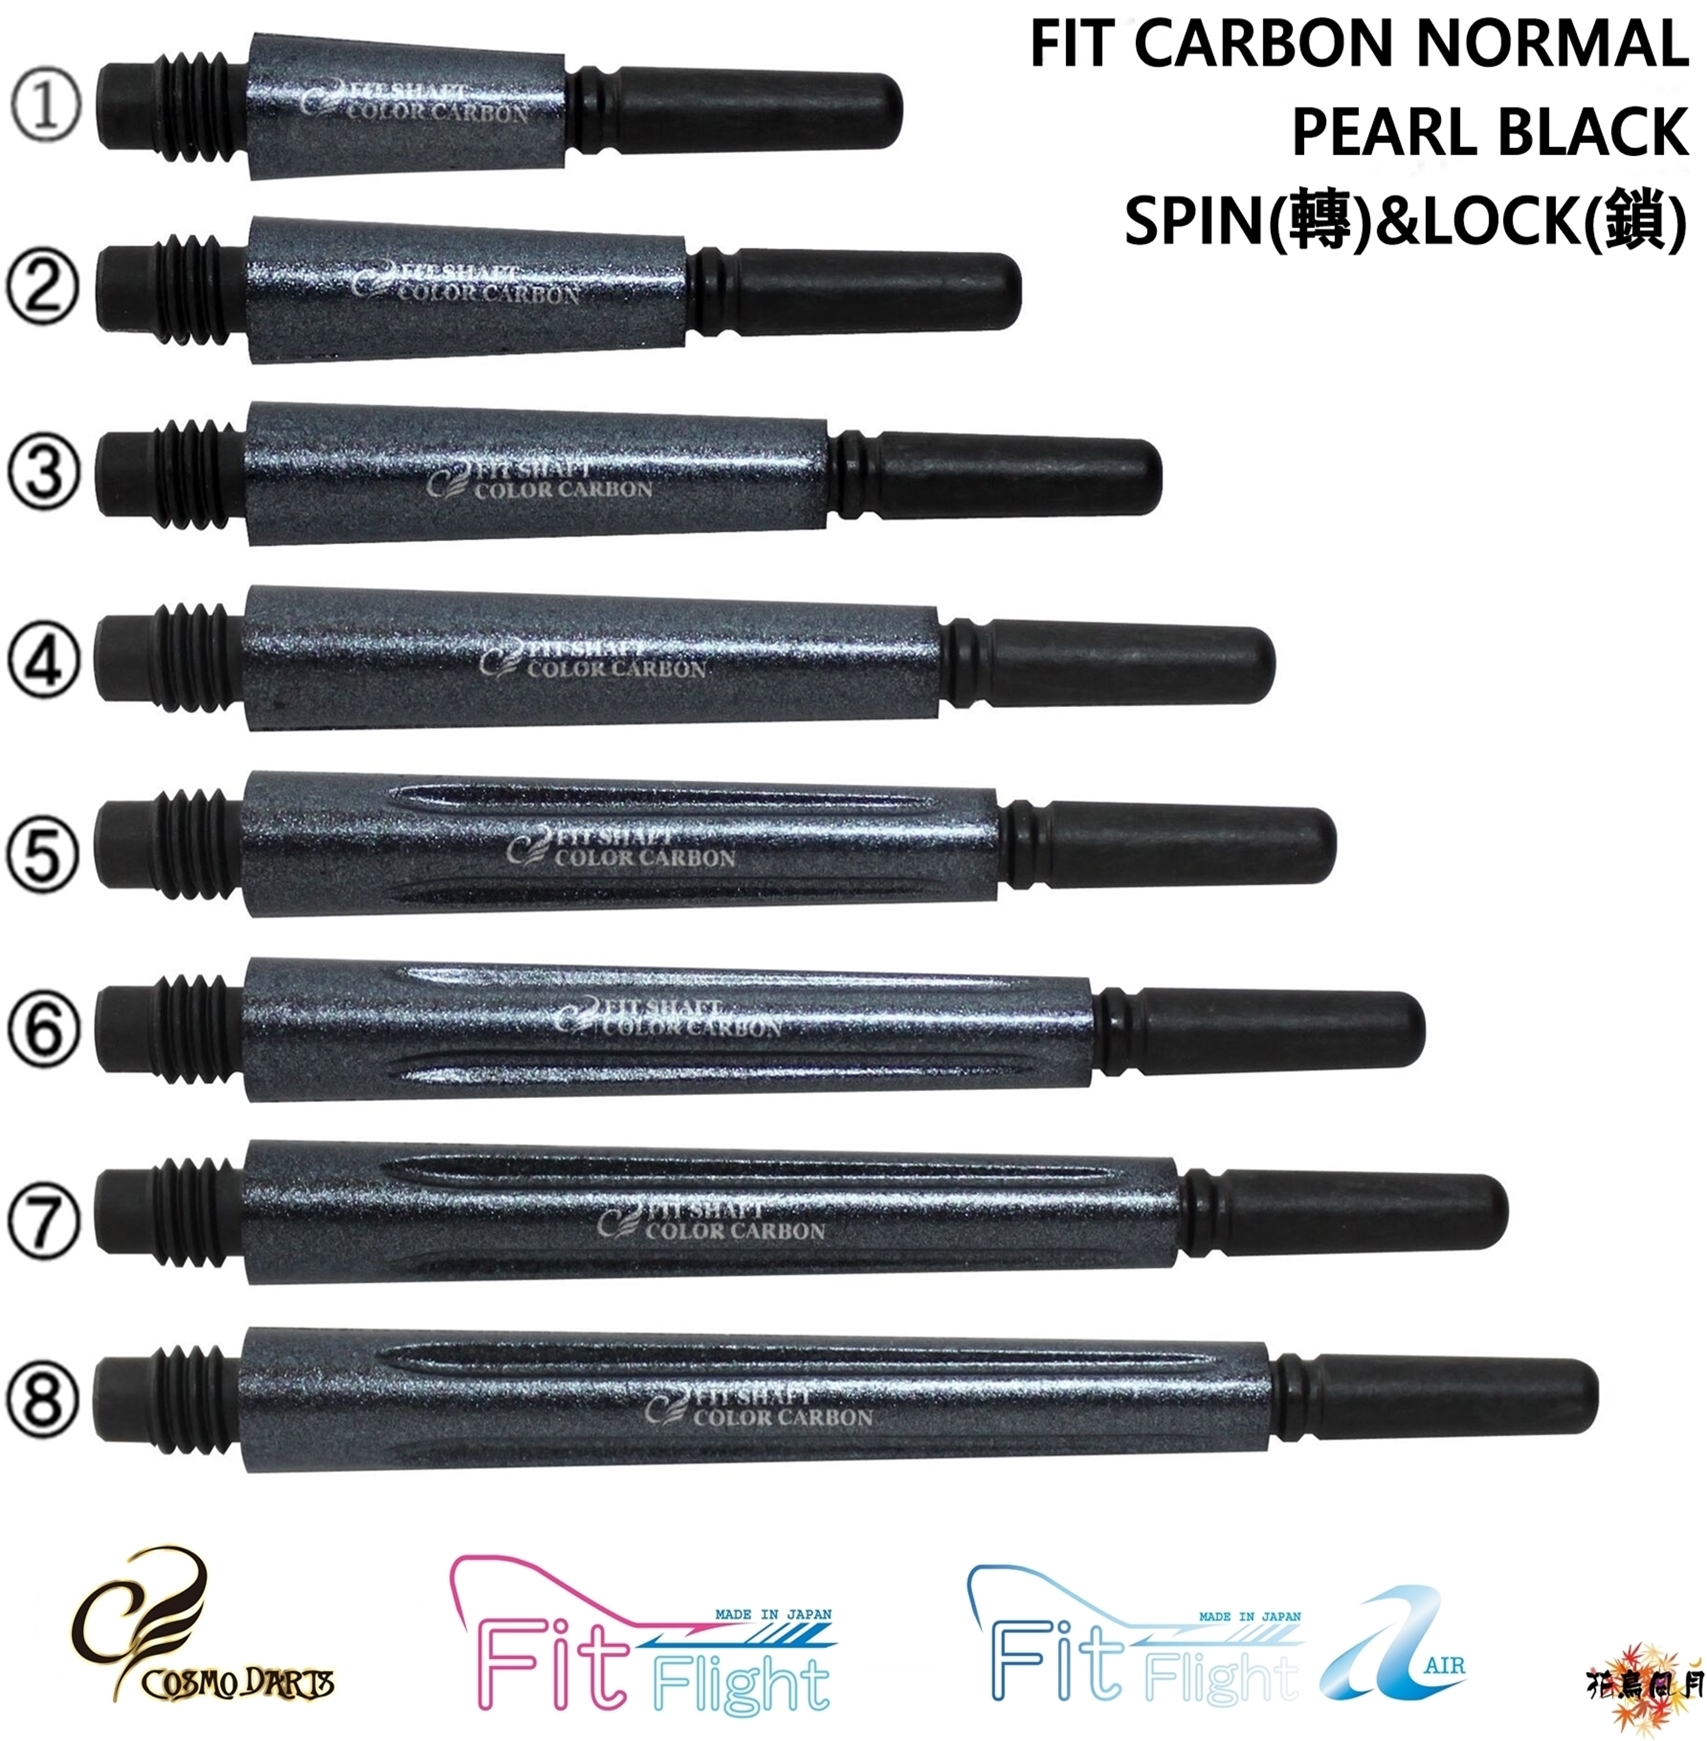 Fit-COLOR-CARBON-PEARL-BLACK-NORMAL-1.jpg